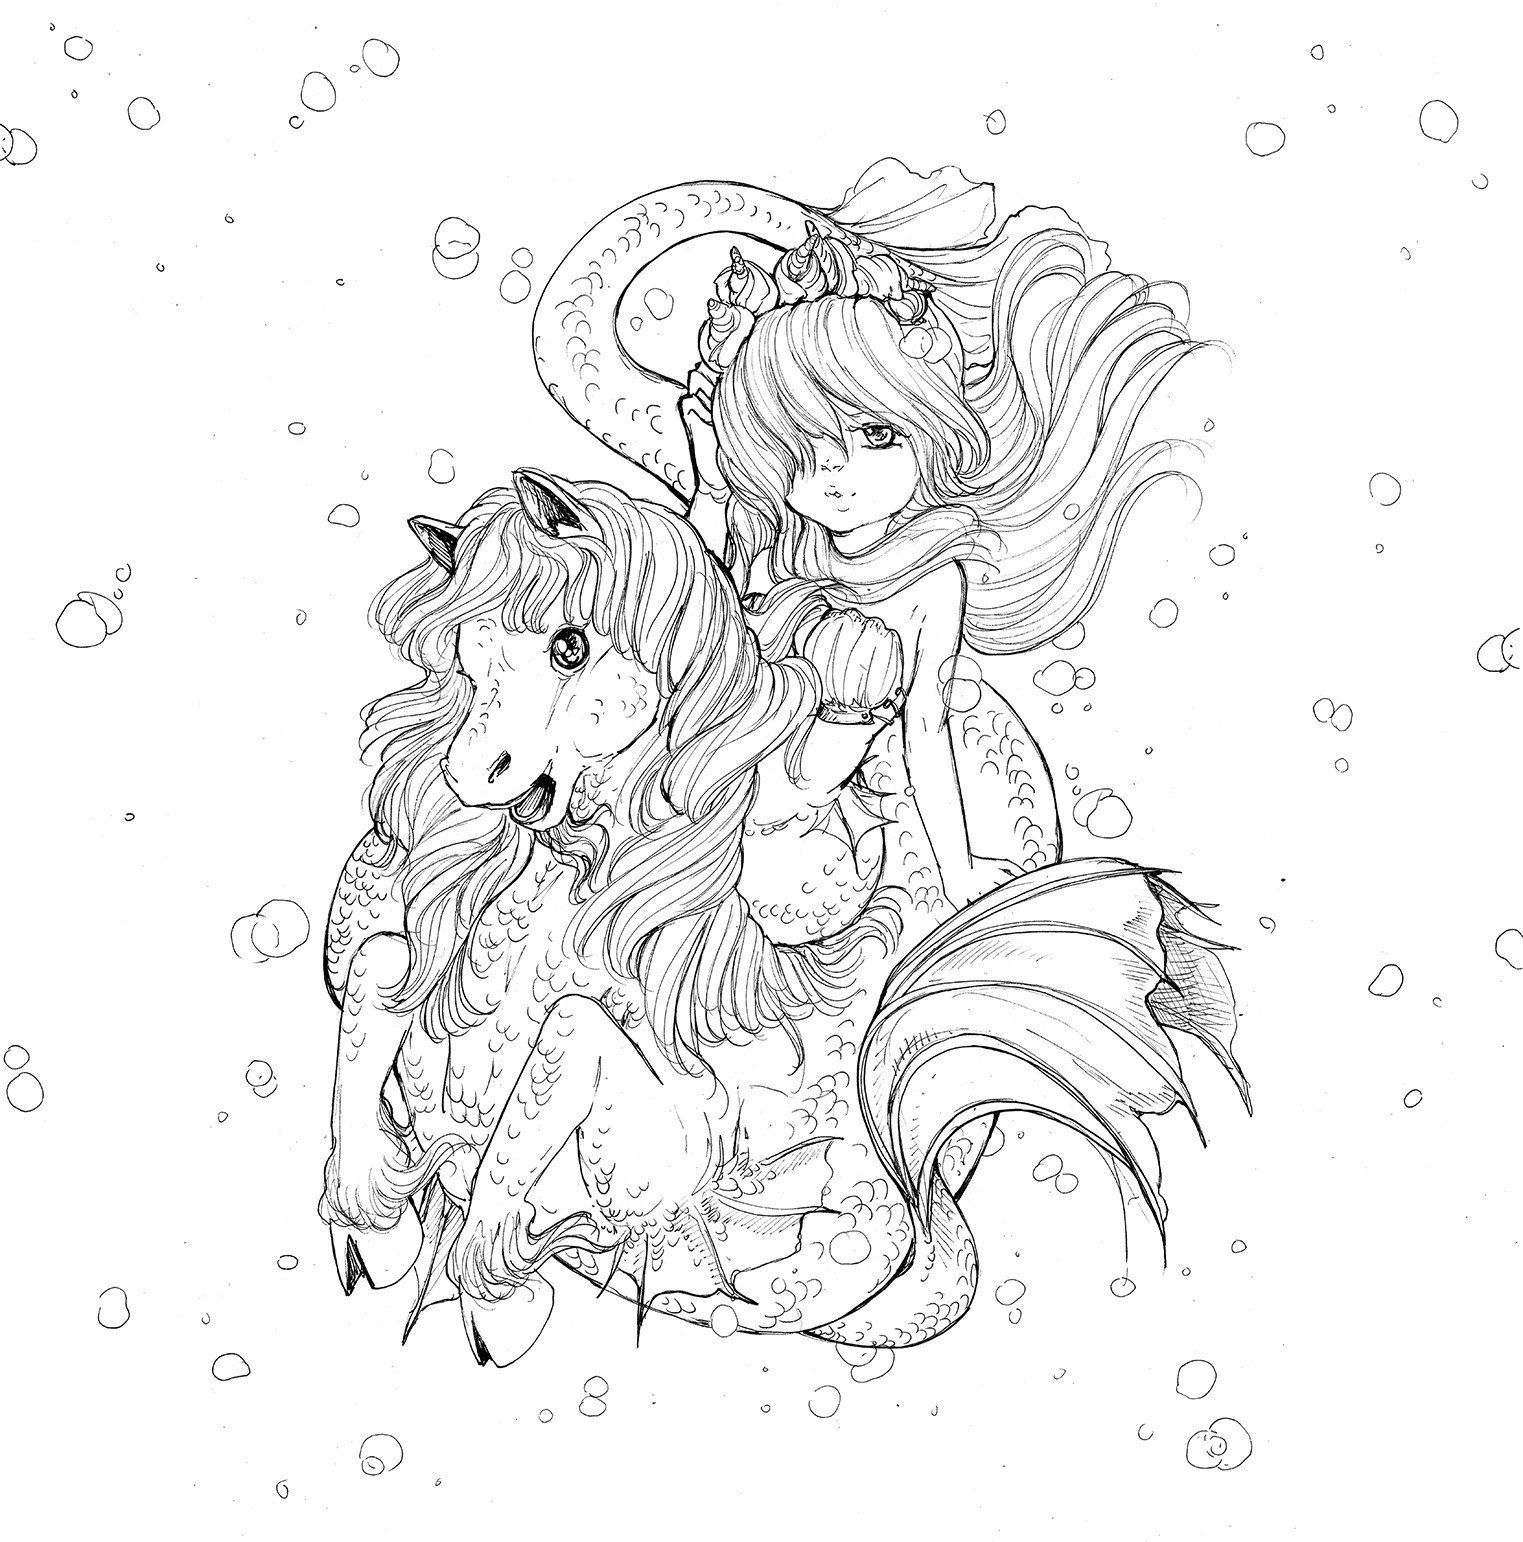 Pop Manga Coloring Book Unique Coloring Pages Idea Baby Mermaid Coloring Page Manga Coloring Book Mermaid Coloring Book Mermaid Coloring Pages